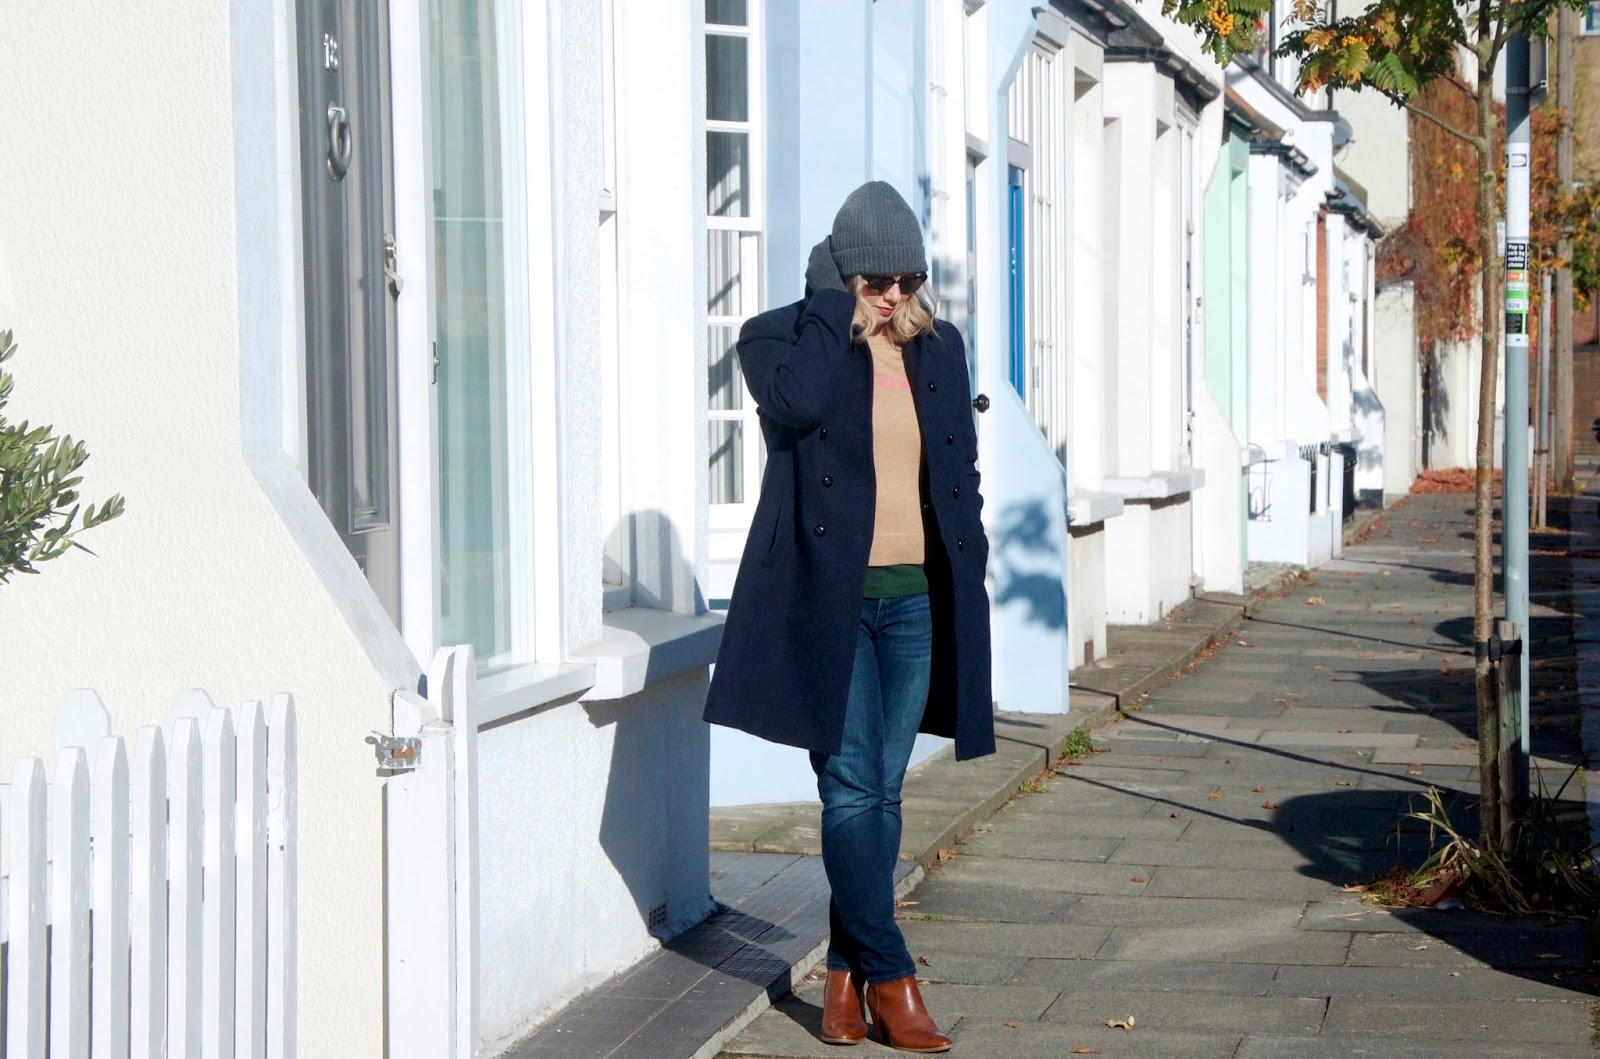 Grey hat, navy coat, camel sweater, jeans and brown boots with colorful houses and sidewalk